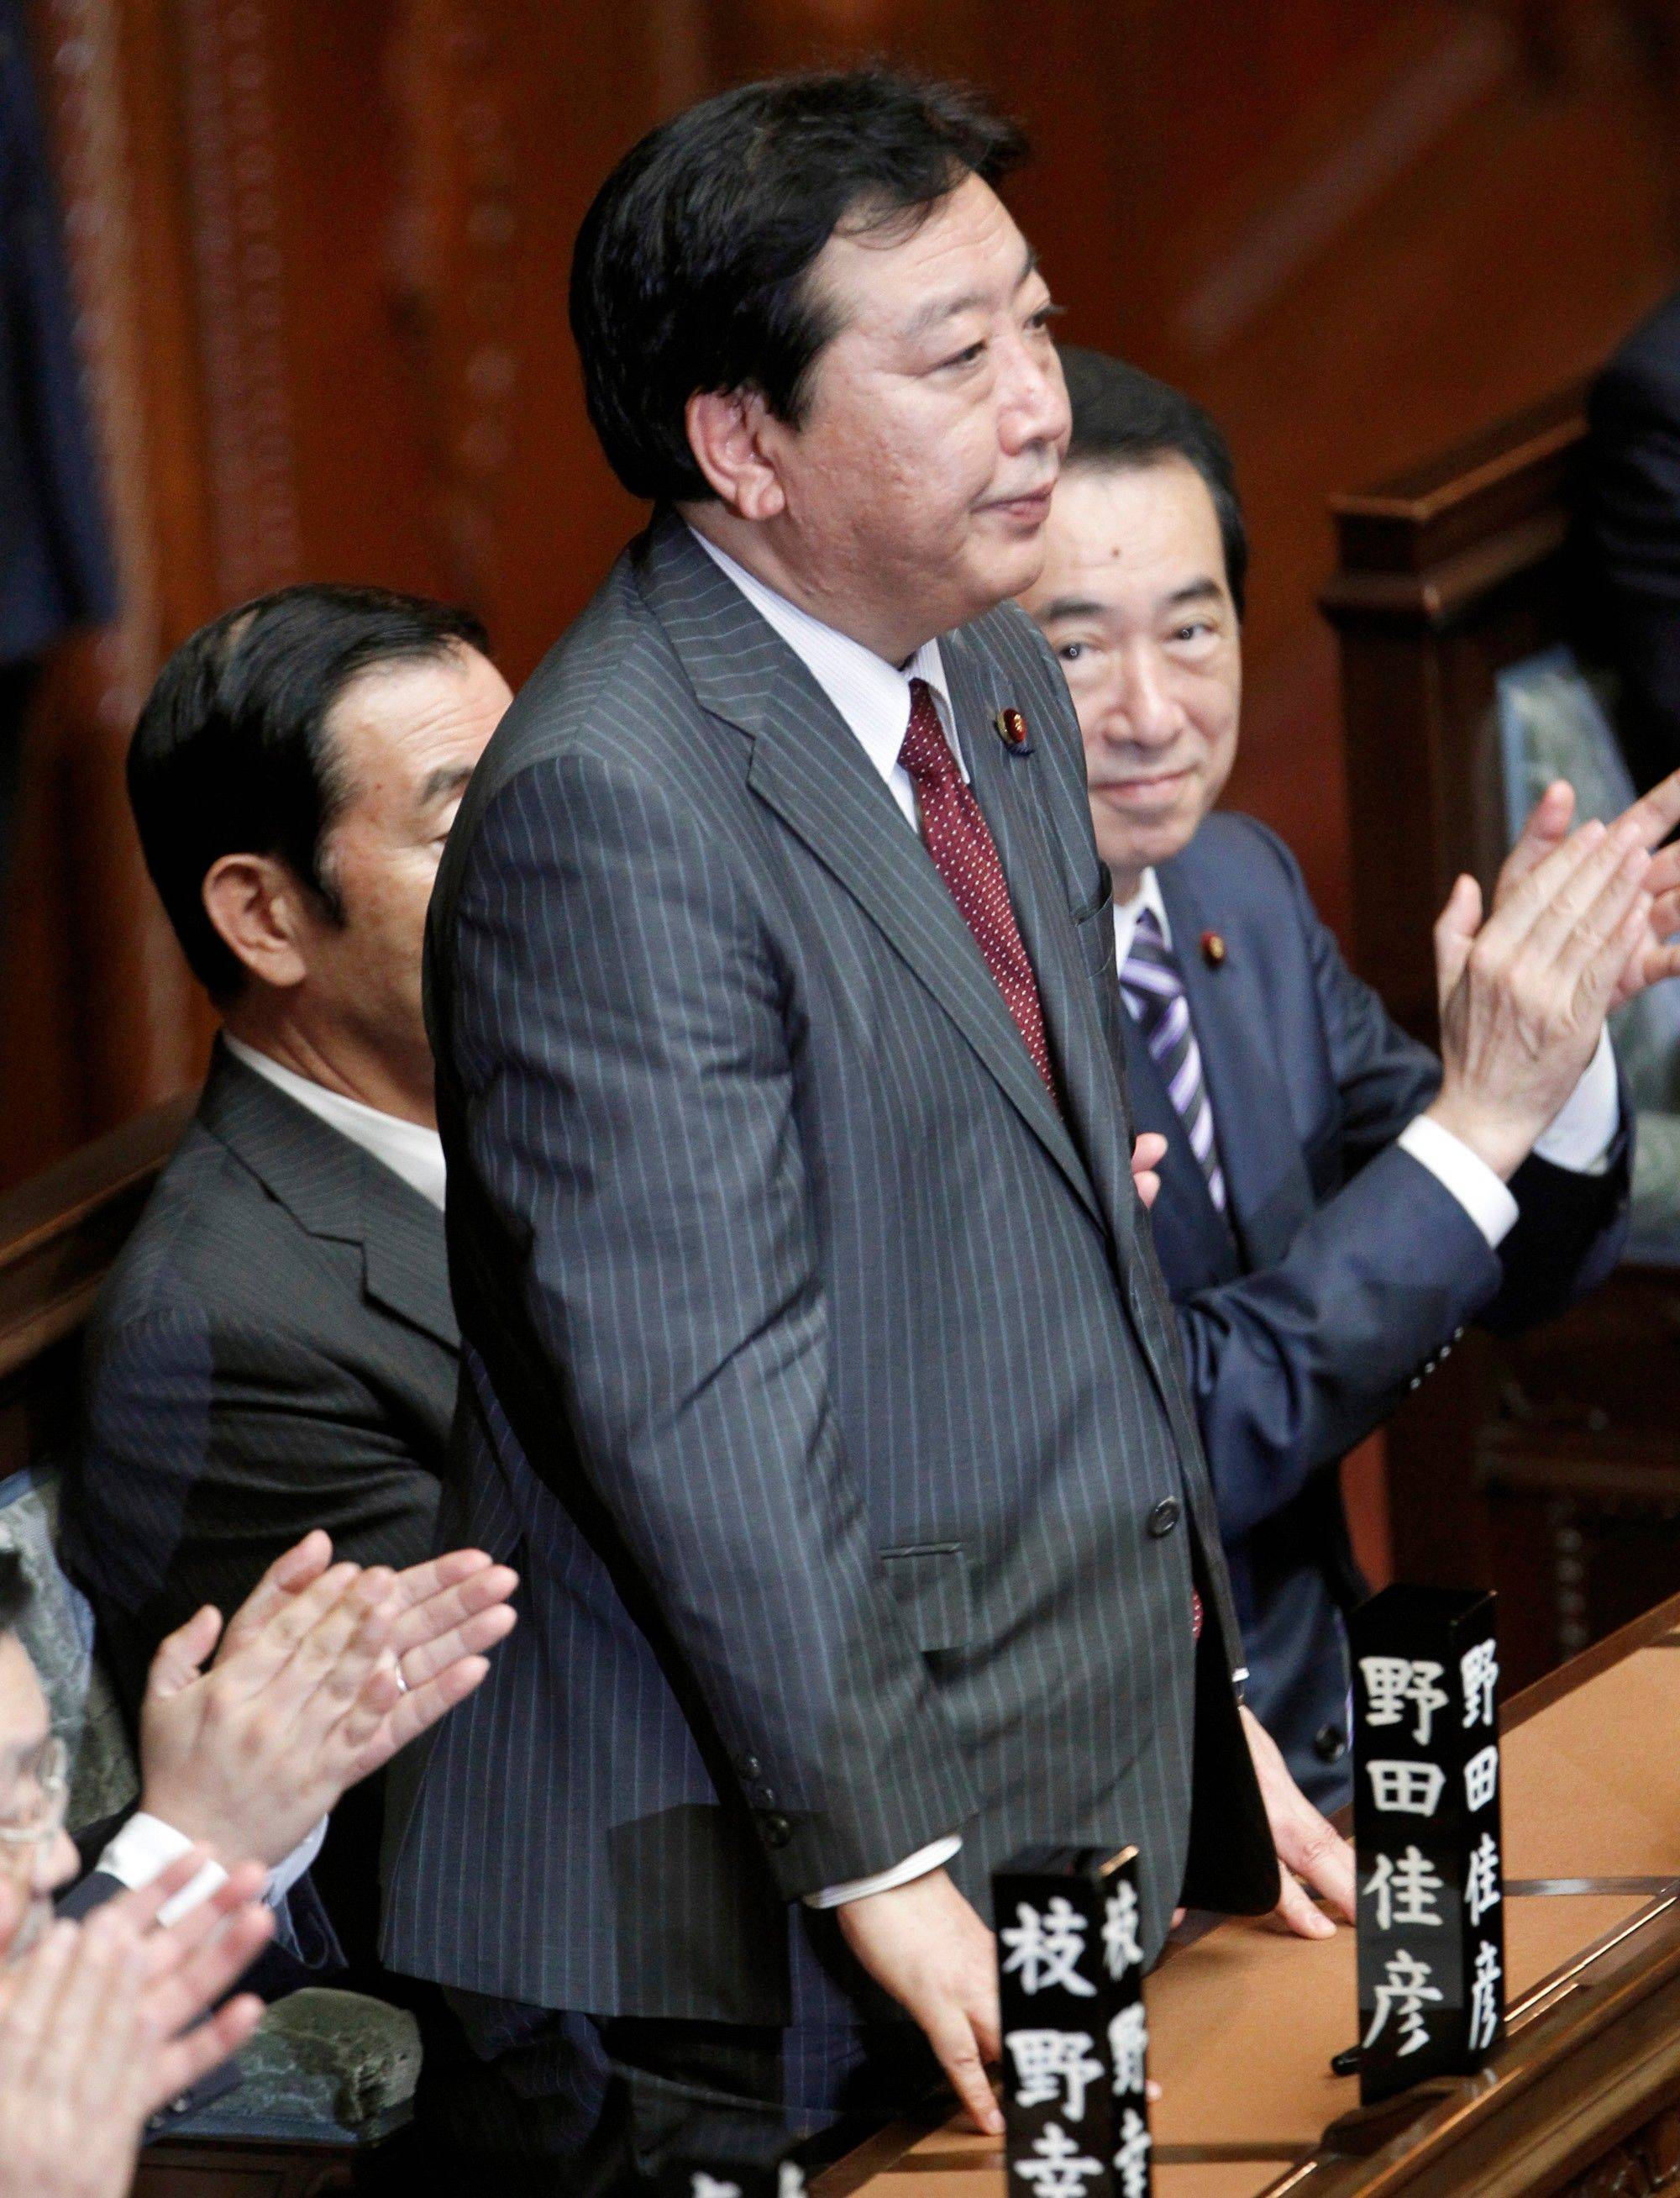 Yoshihiko Noda, new leader of the ruling Democratic Party of Japan, stands after Japan�s lower house elected him the country�s new prime minister at the parliament in Tokyo Tuesday.